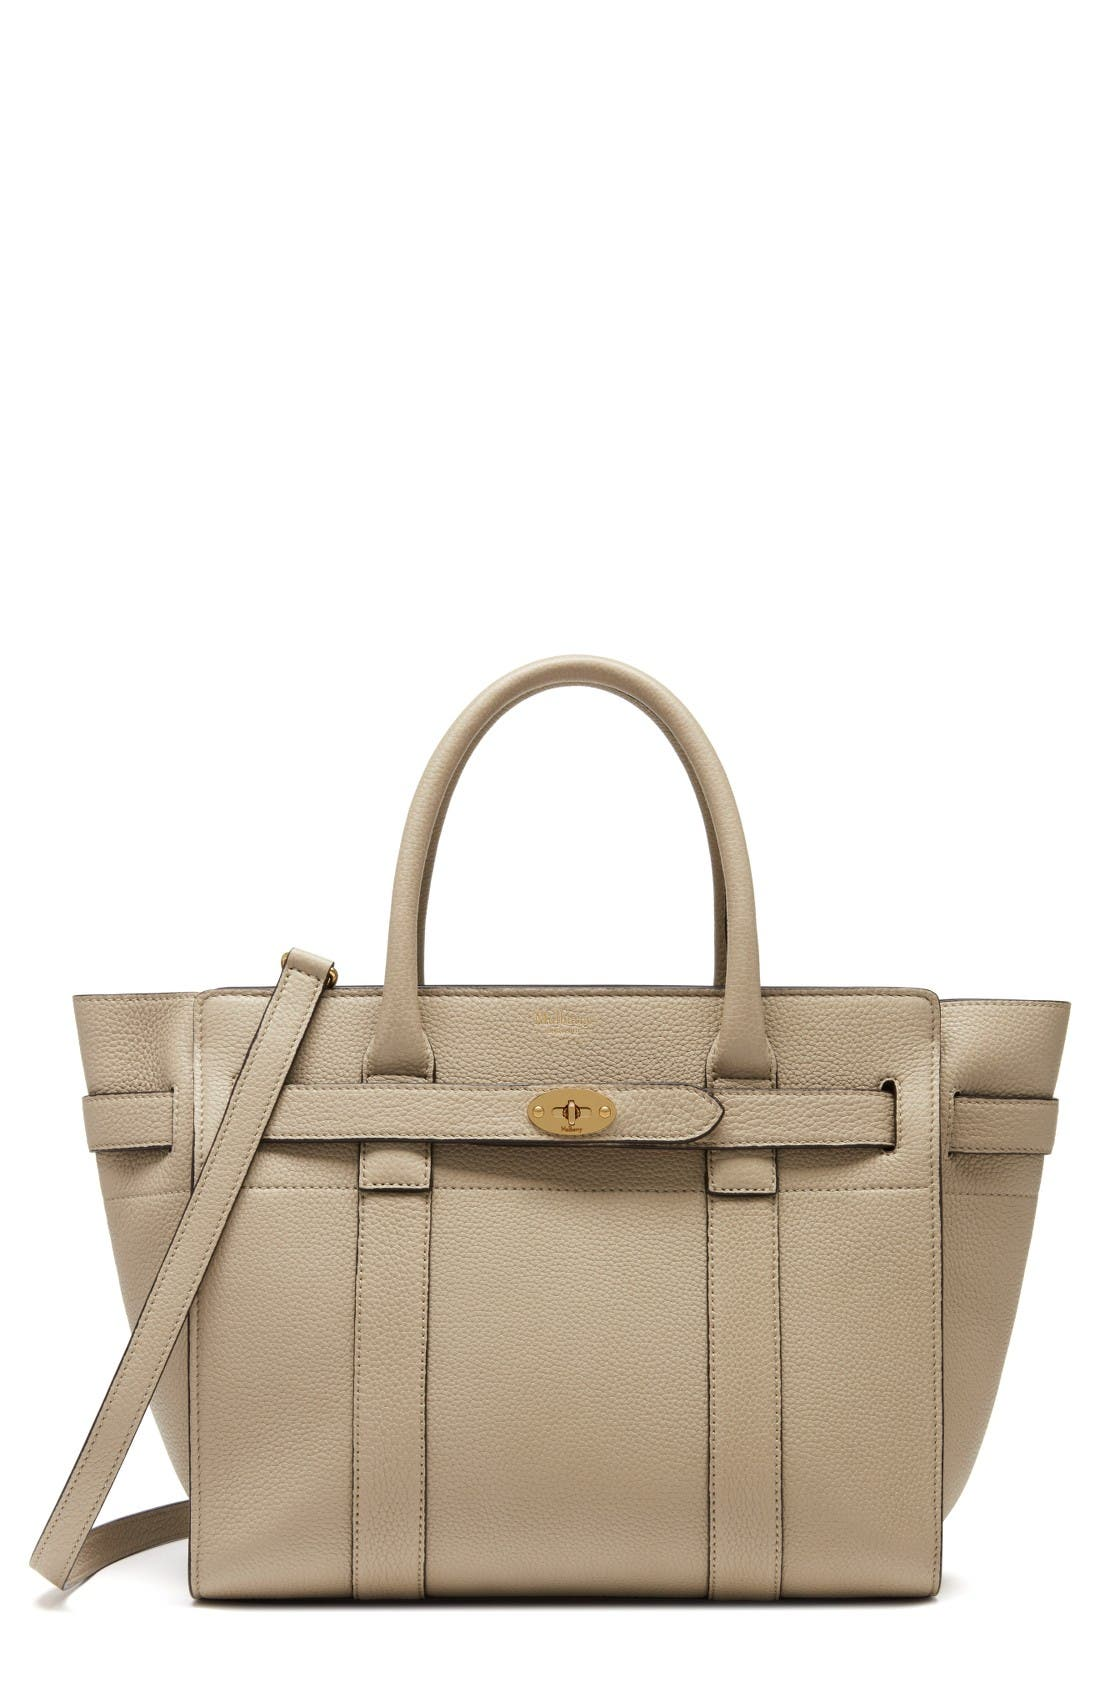 MULBERRY Small Zipped Bayswater Leather Satchel